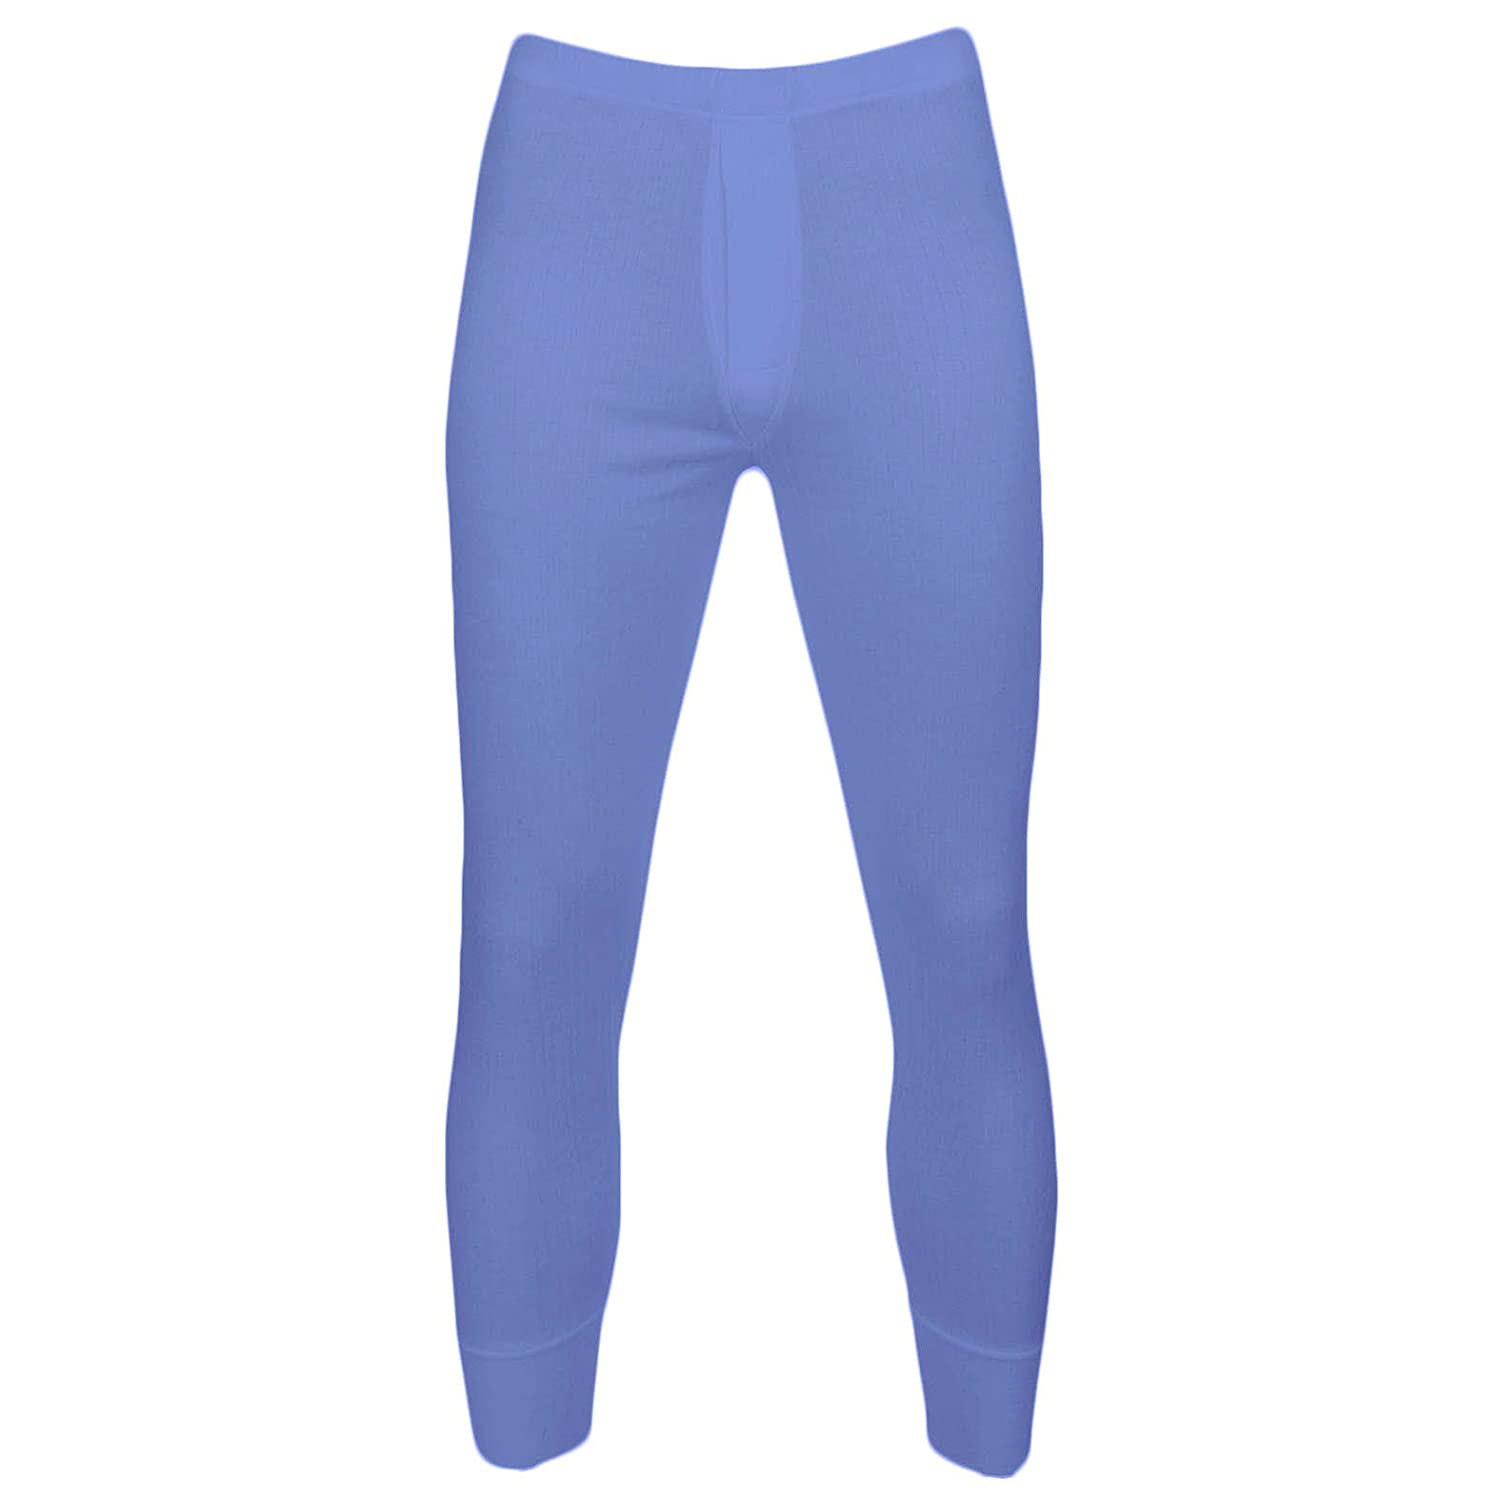 Outdoor Work Medium, Blue B.U.L /® Mens Extreme Hot Thermal Underwear Long John Suitable for Winter Travel XL Camping /& Ski Wear Size S